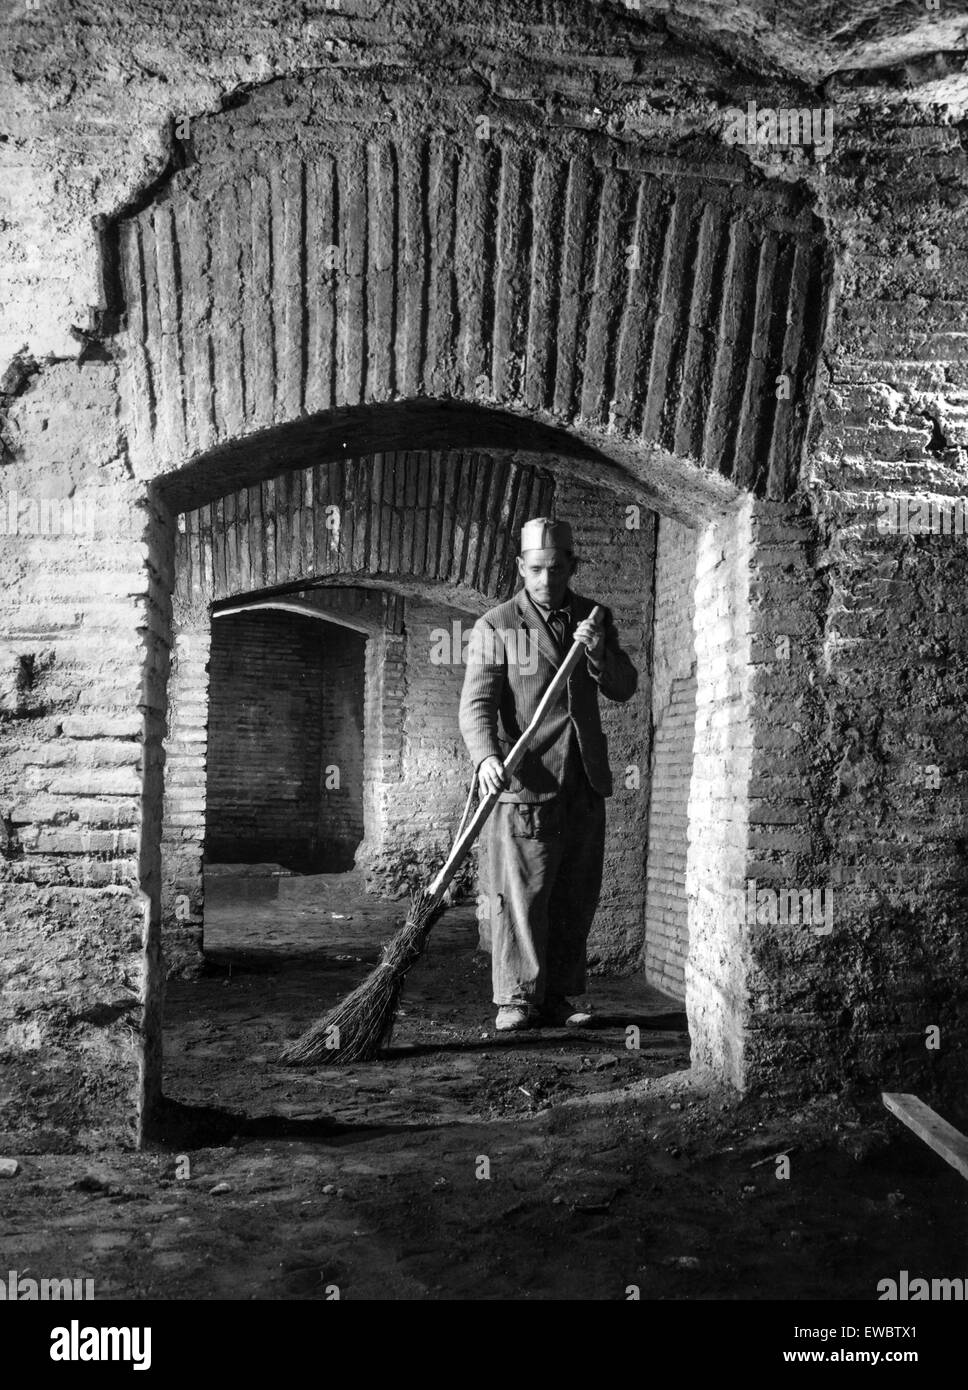 an attendant cleans the ludus magnus near the Colosseum,Rome 1960 - Stock Image